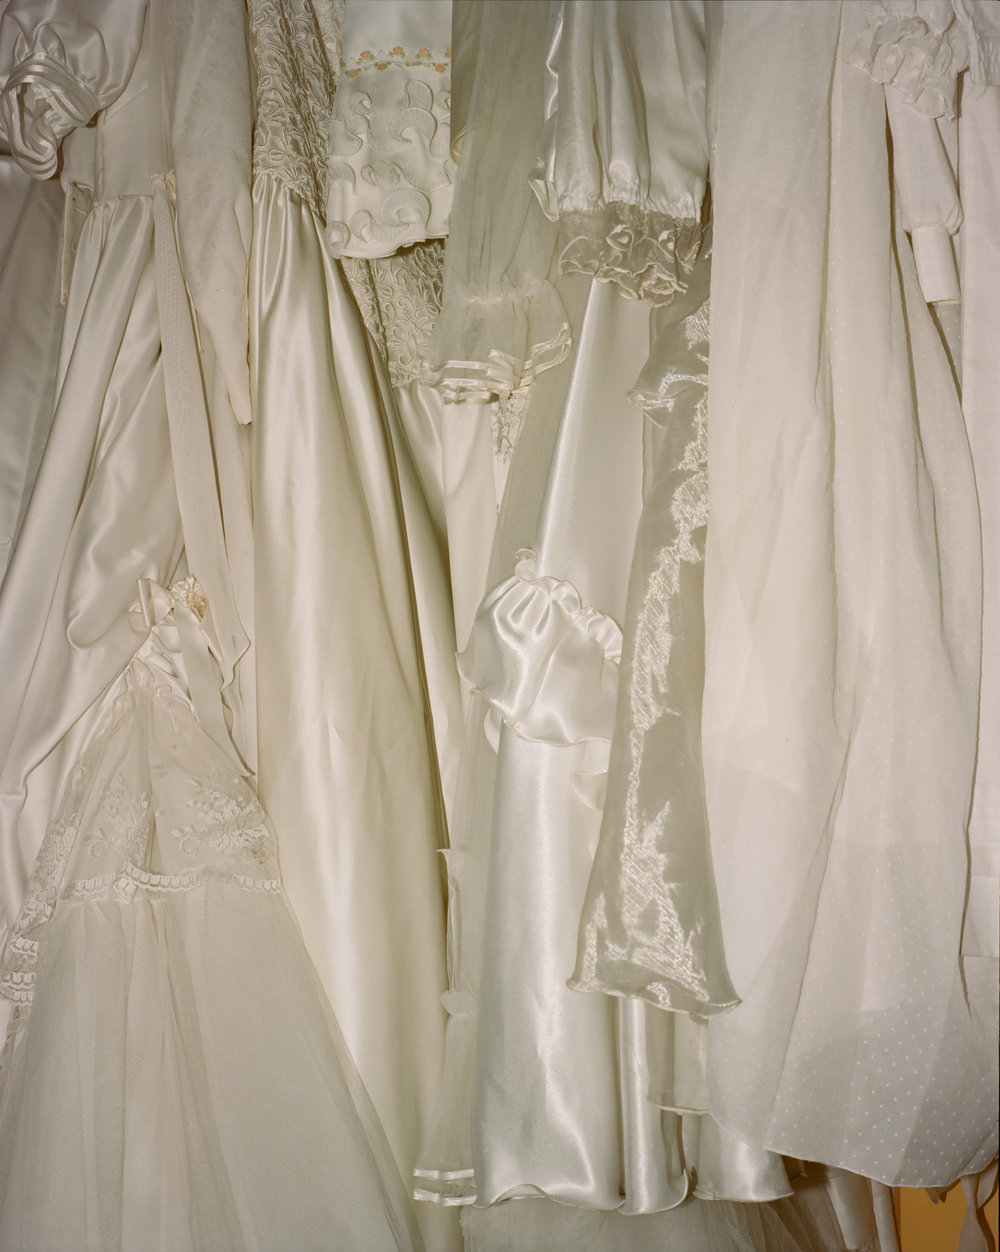 Second Hand Wedding Dresses, Poland, 2016.